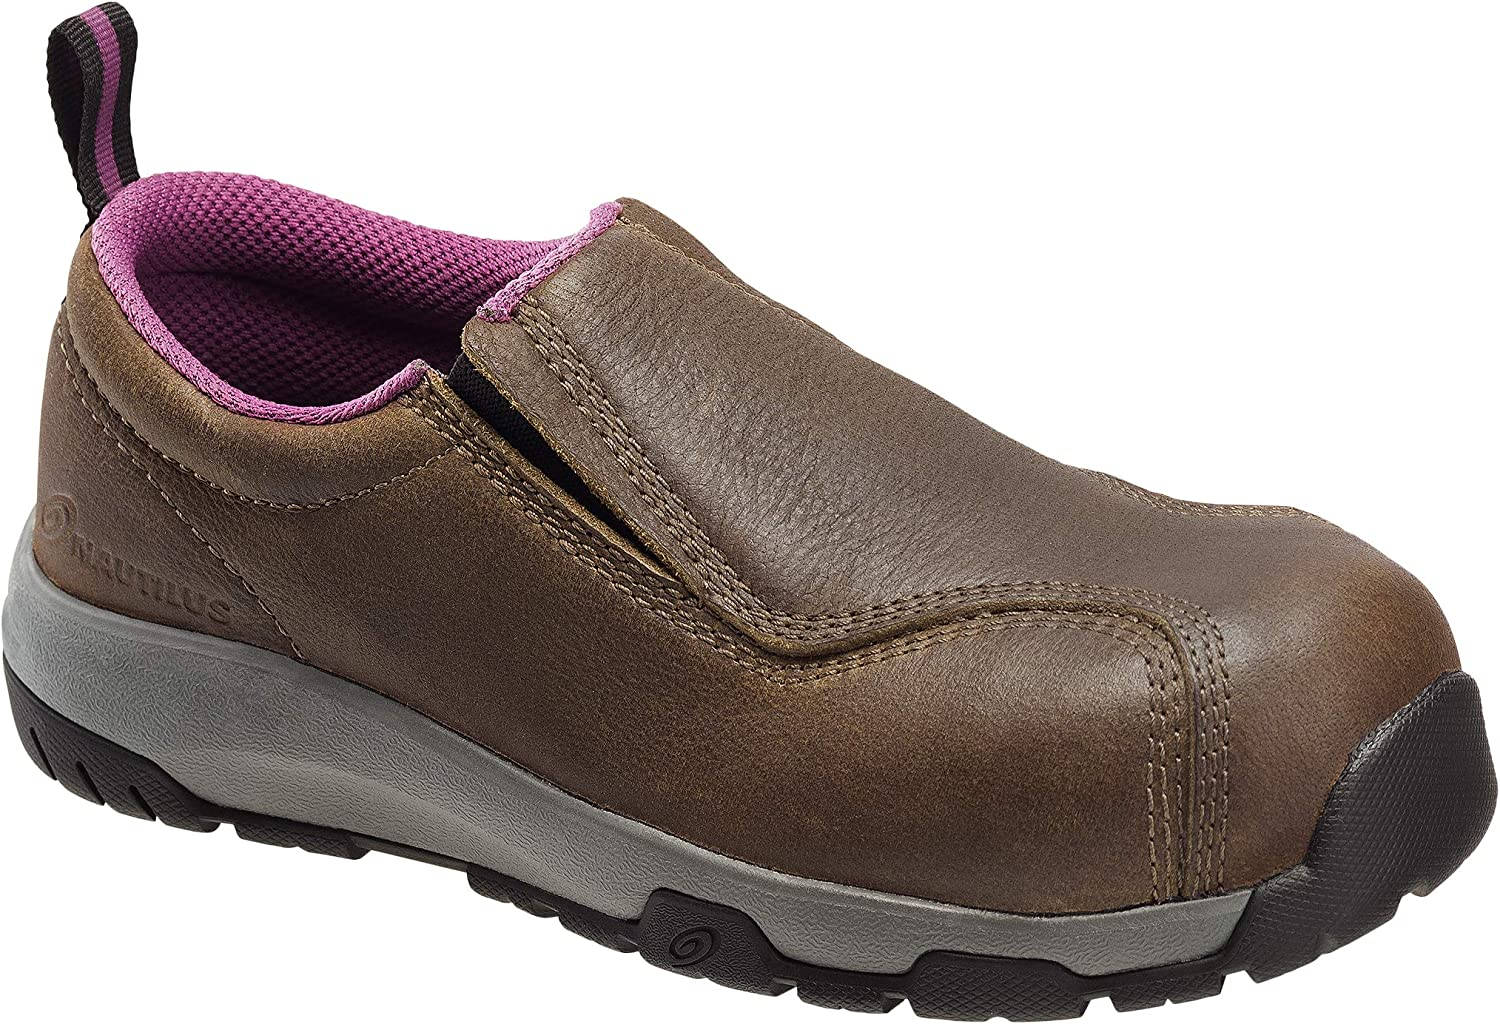 Nautilus Max 59% OFF Safety Outlet sale feature Footwear Women's Shoe Slip-on Industrial Sd10